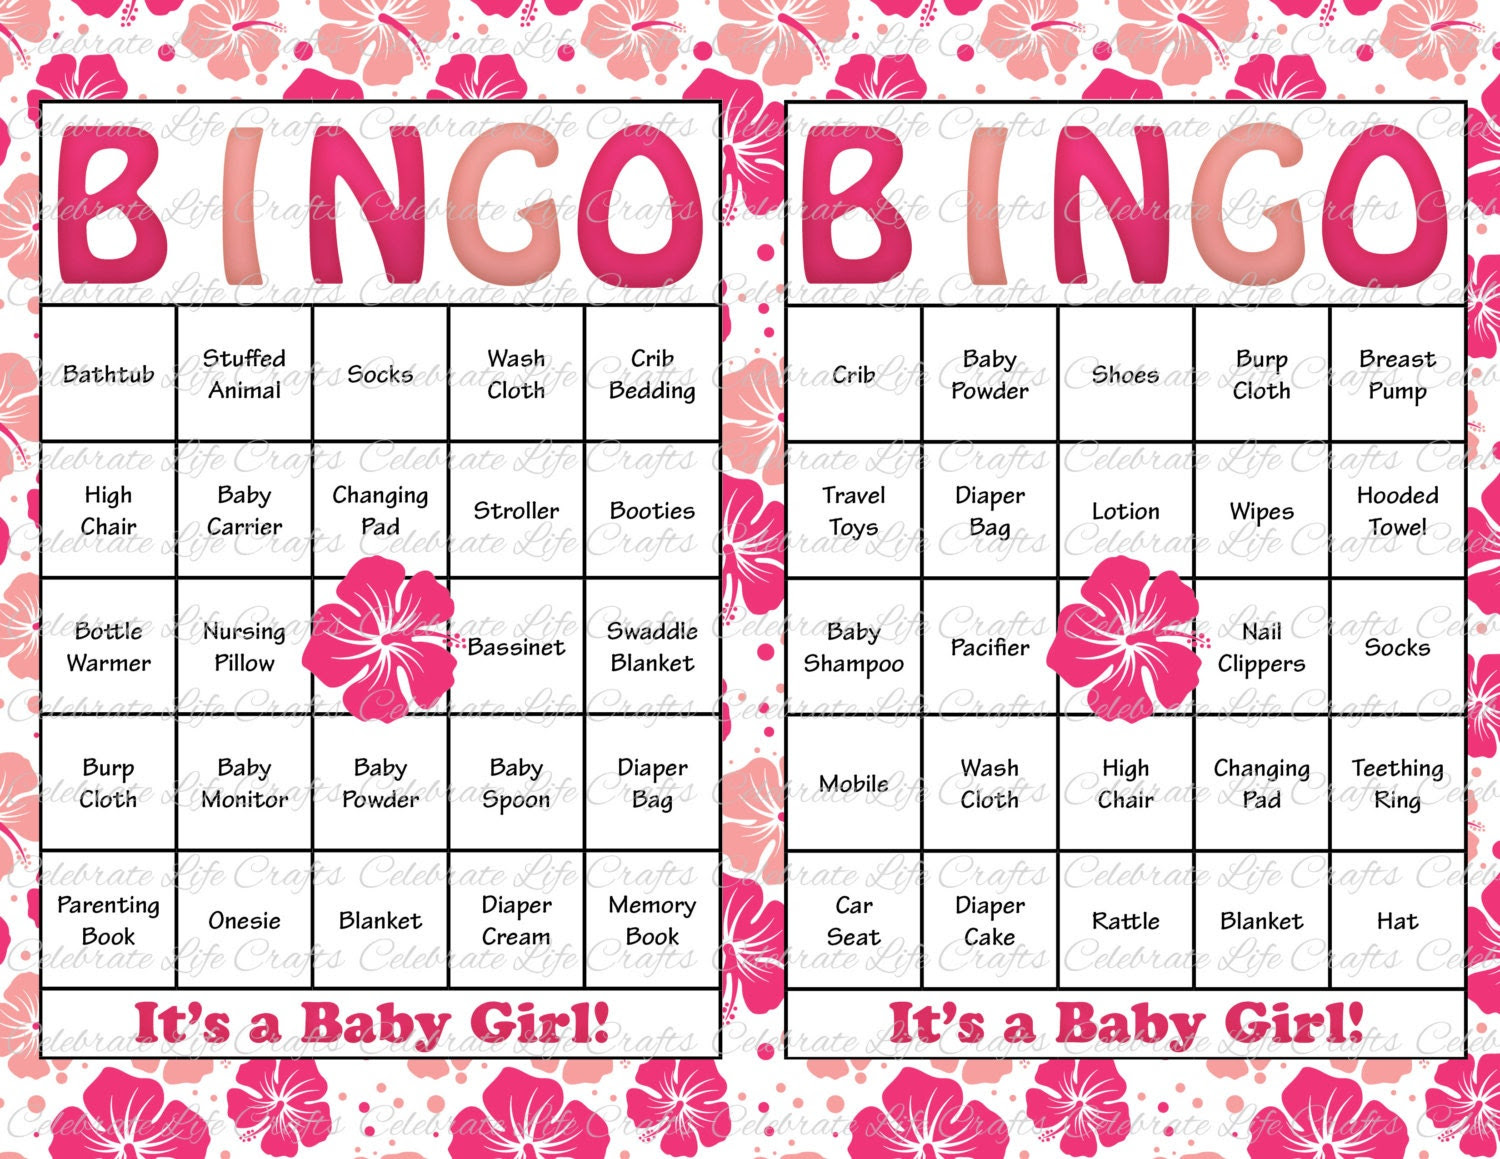 60 Baby Shower Bingo Cards Printable Party by CelebrateLifeCrafts